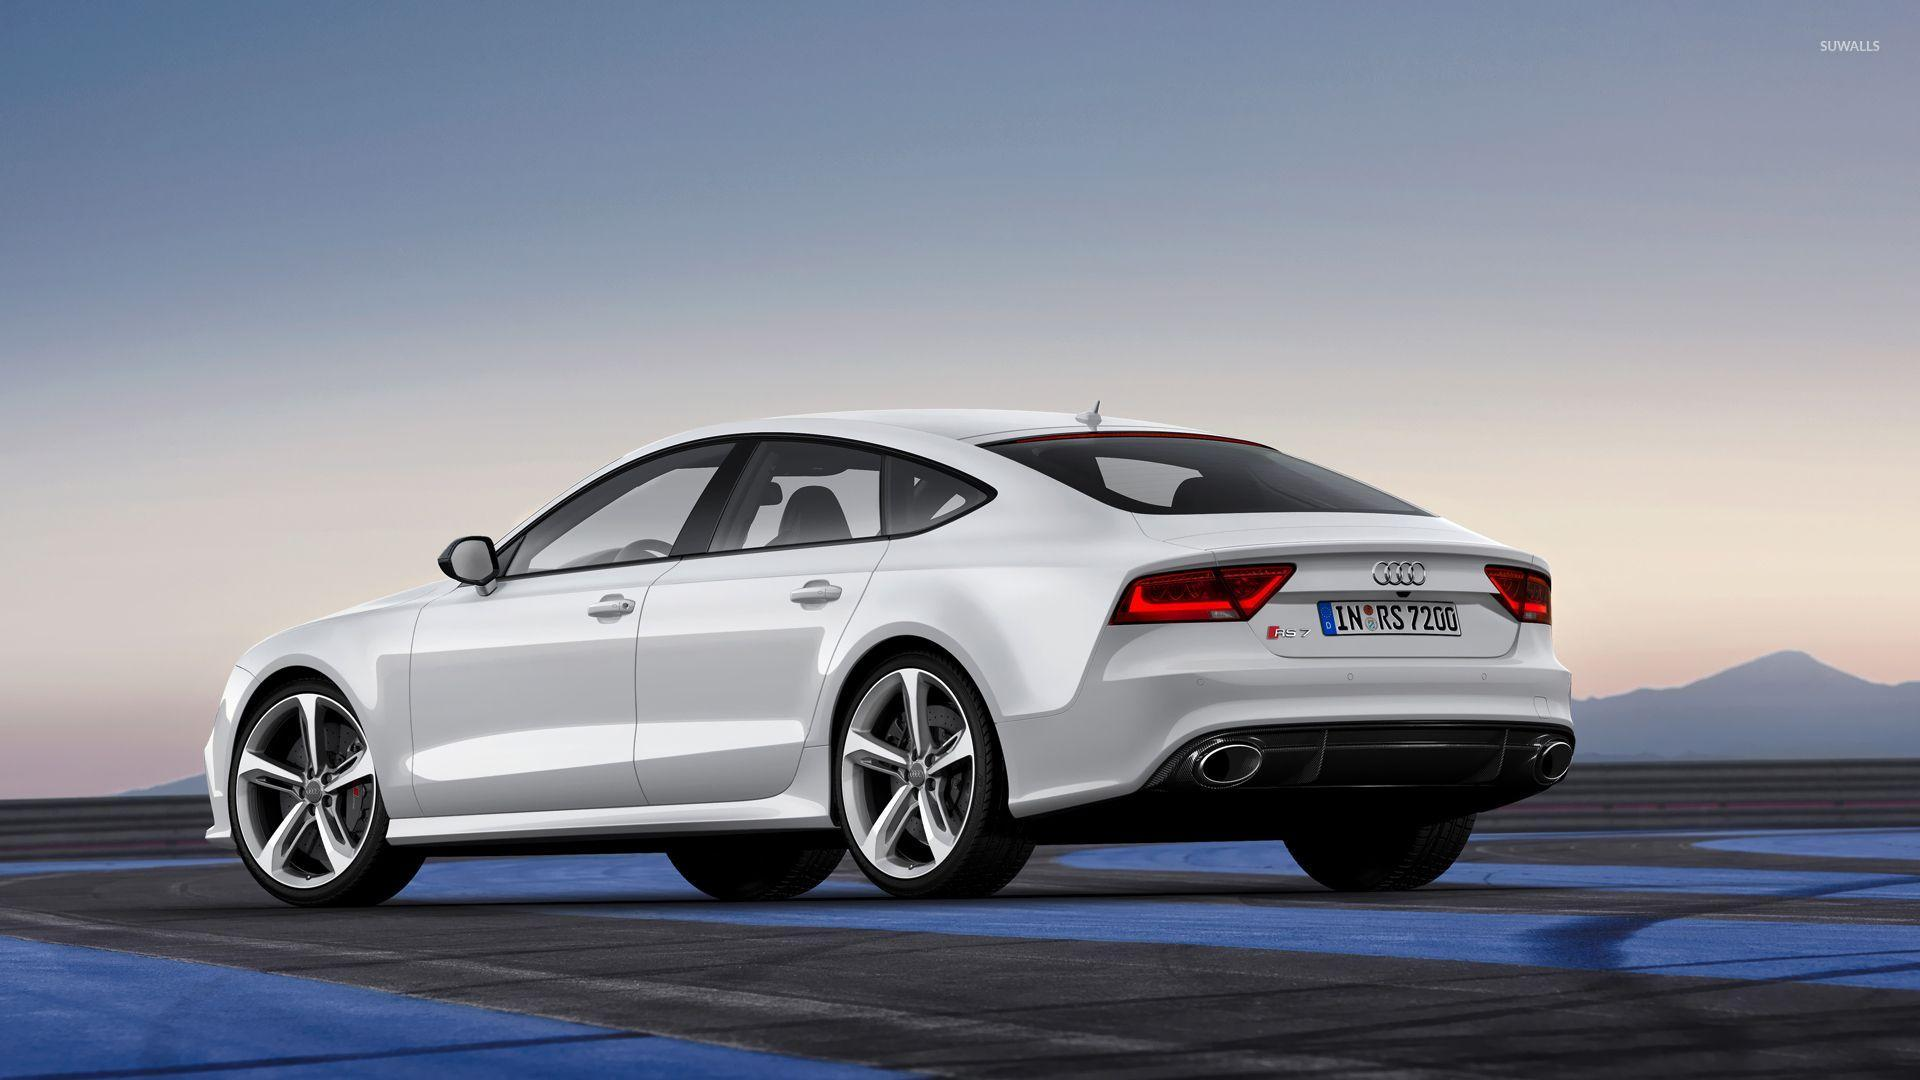 Back view of a 2014 Audi RS7 Sportback wallpapers